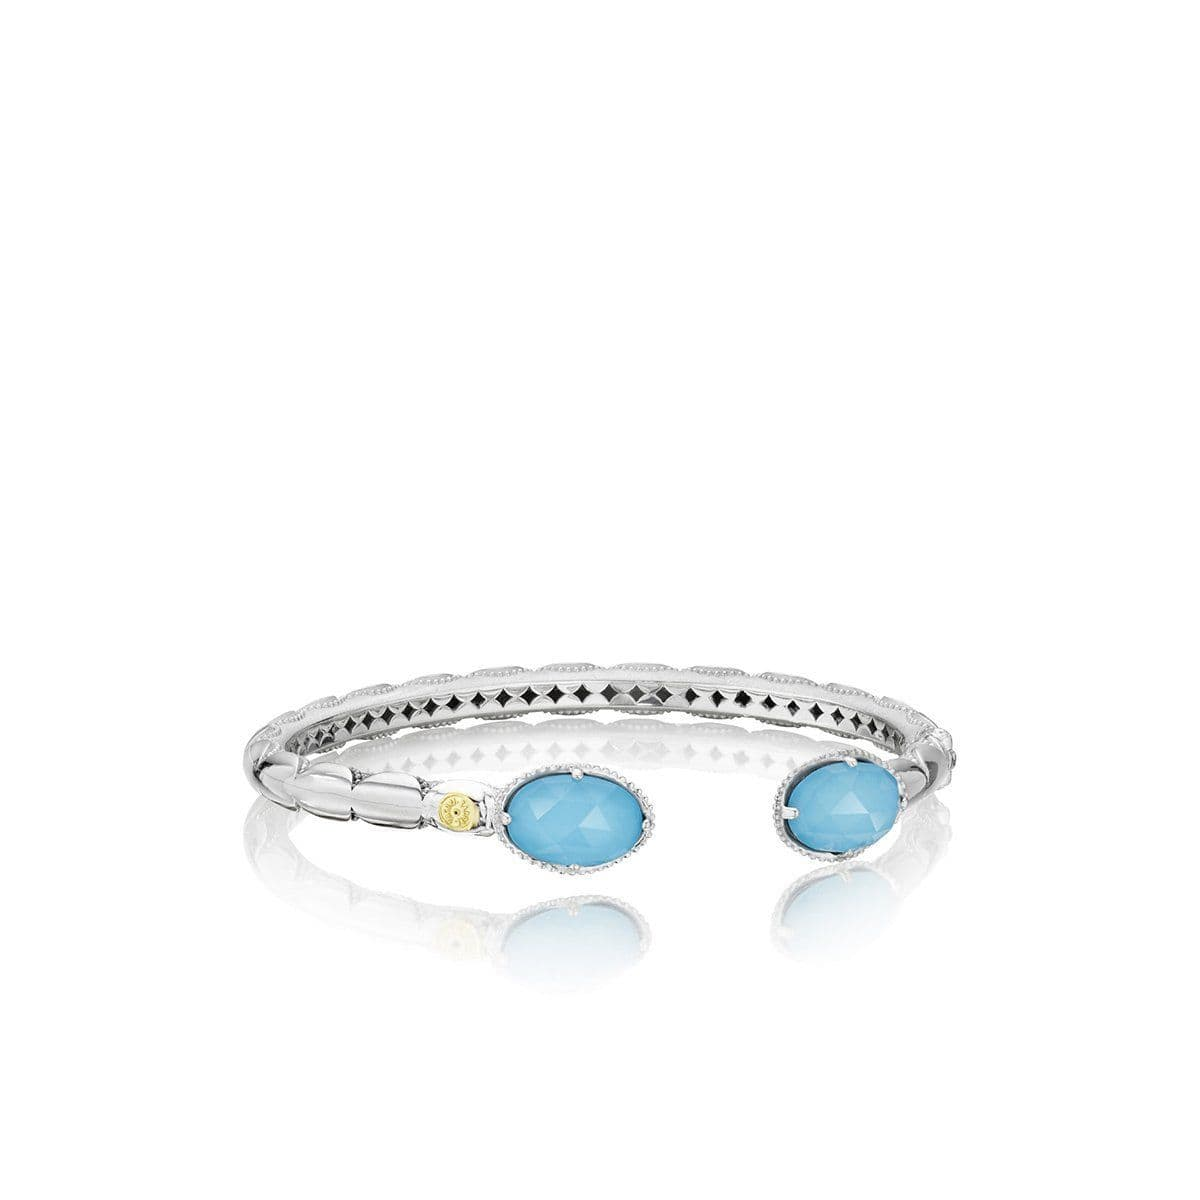 Silver Oval Turquoise Bangle - SB13305-Tacori-Renee Taylor Gallery